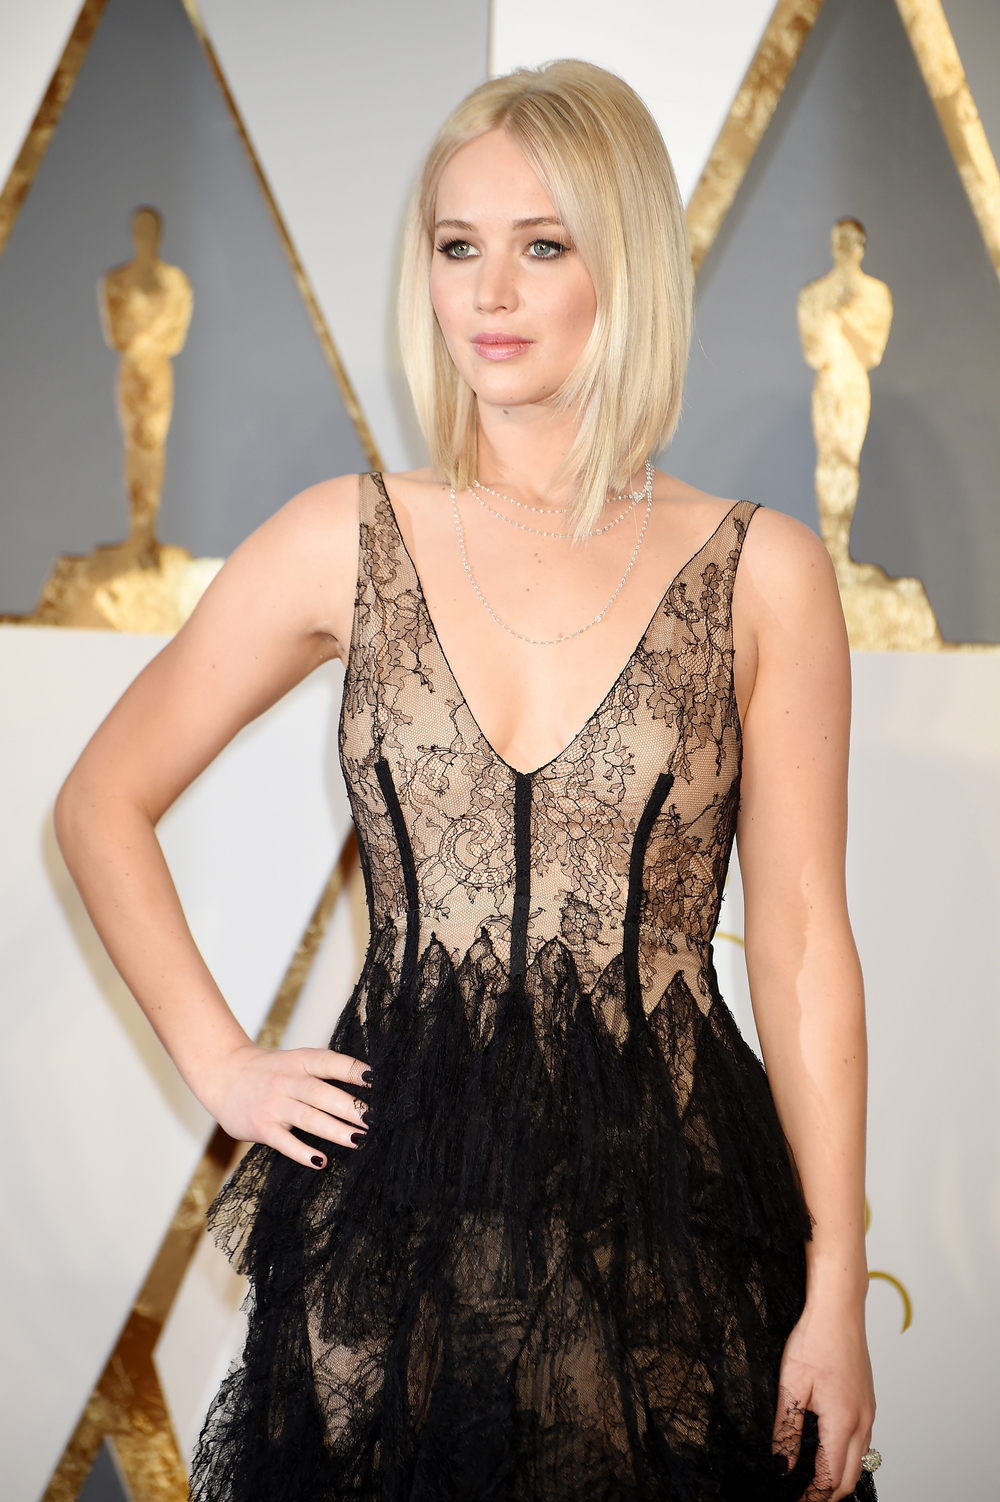 Jennifer Lawrence made a grand entrance this year with her pretty platinum haircolor, razor-cut lob and plunging V-neck sheer and lacey gown.